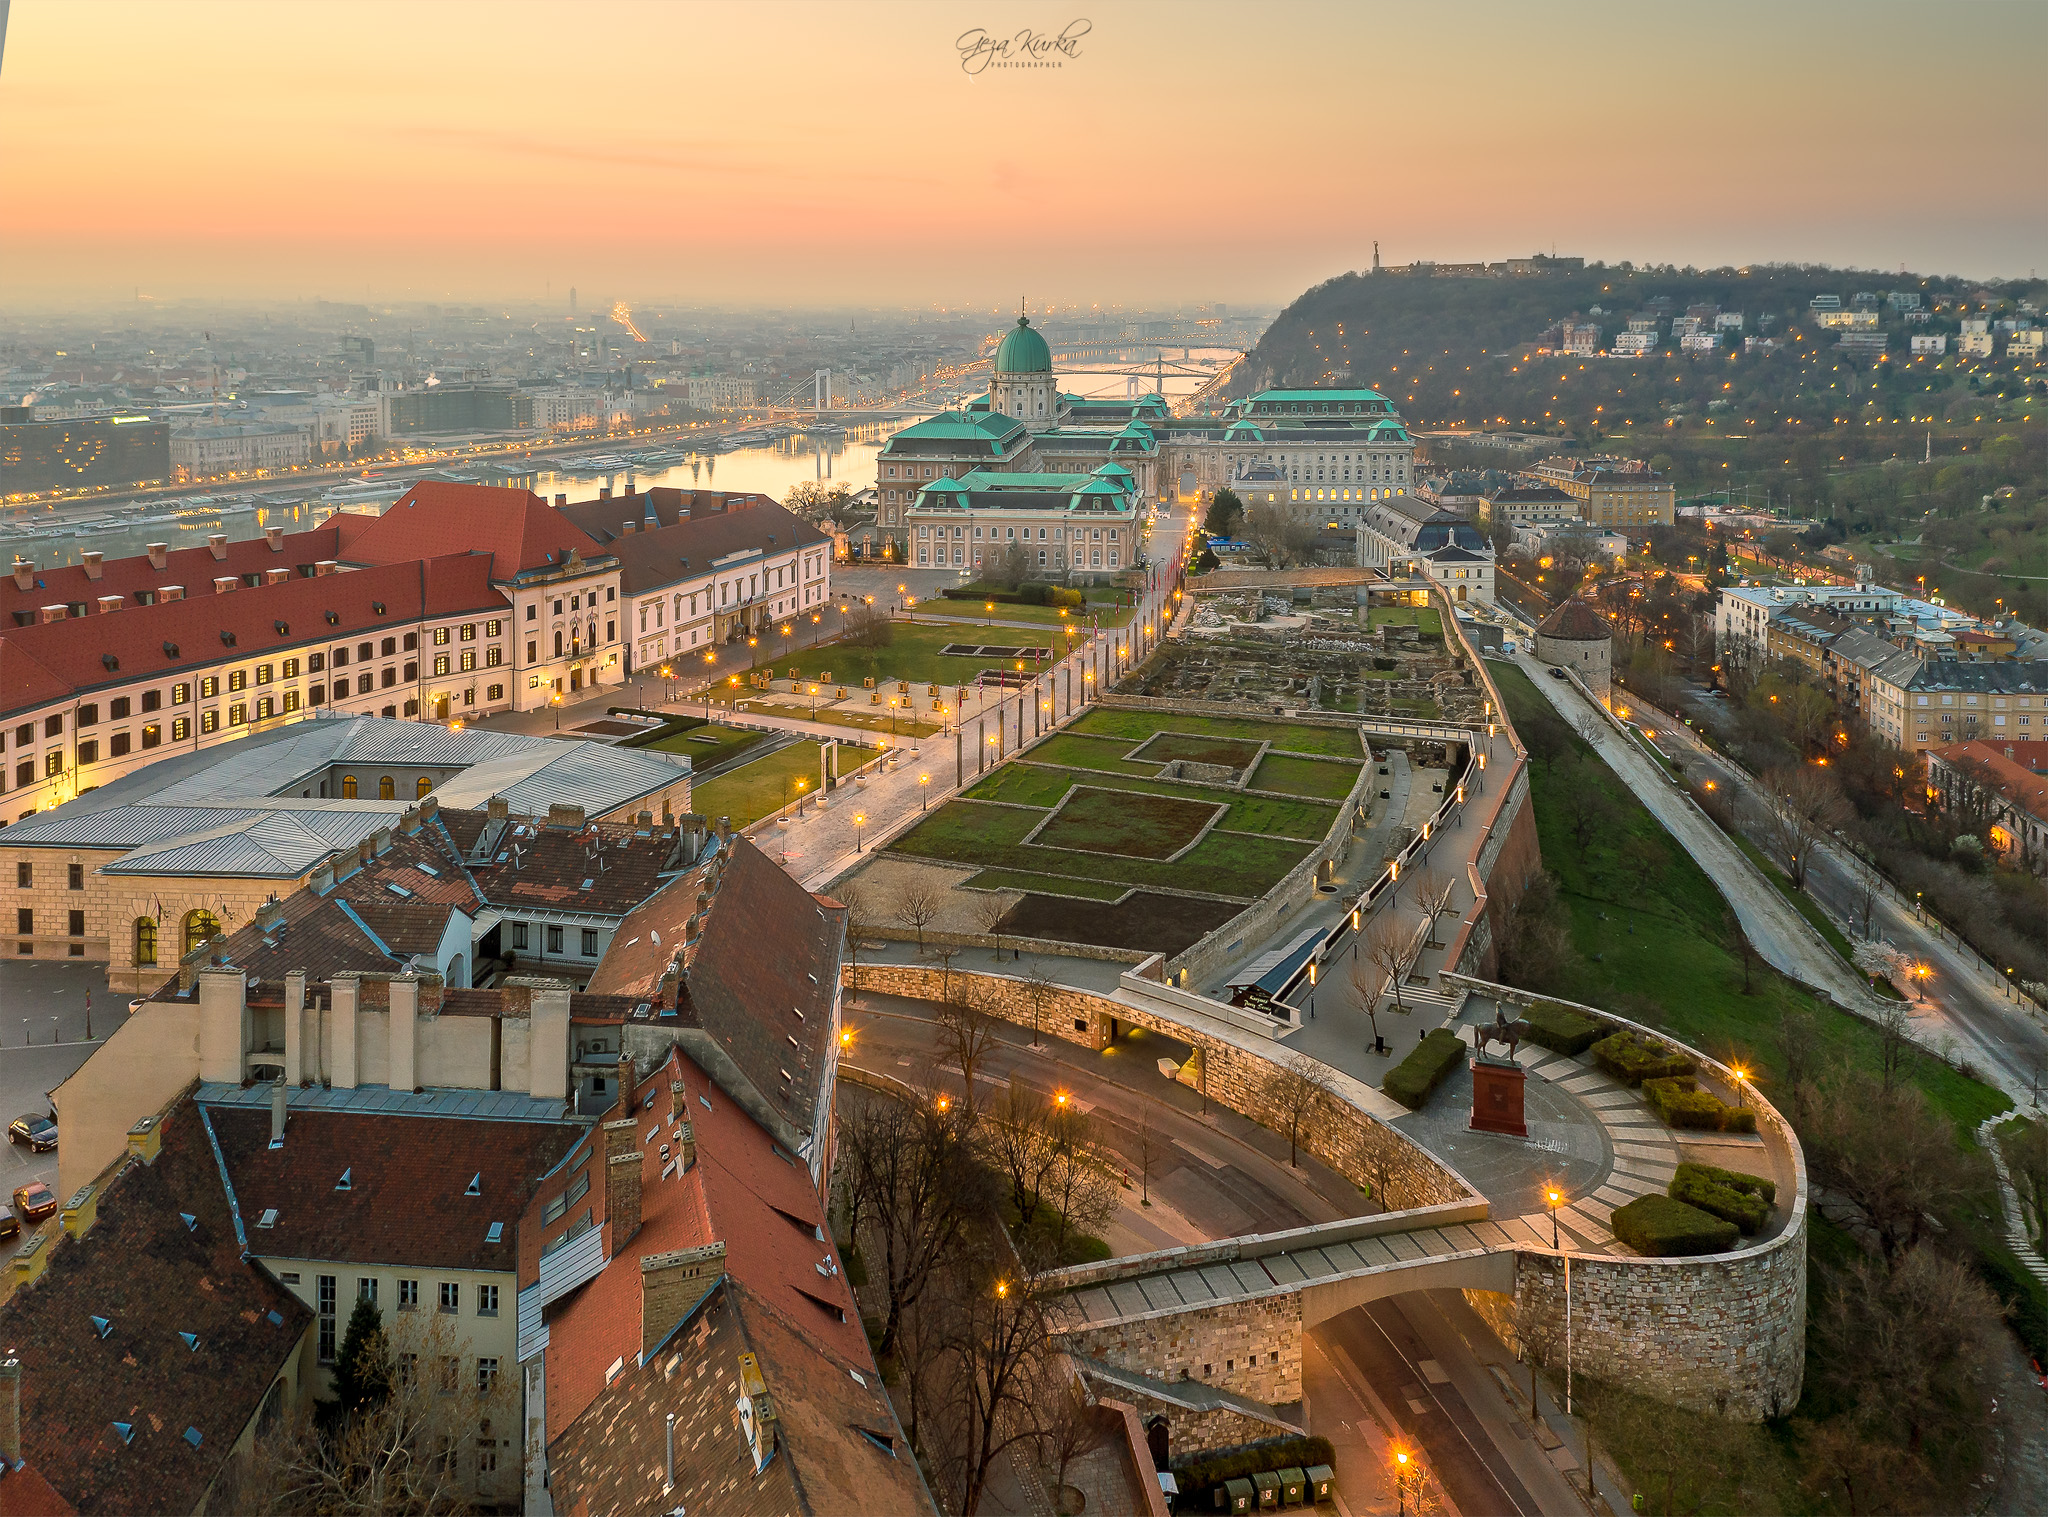 Part of Buda Castle with Drone, Hungary